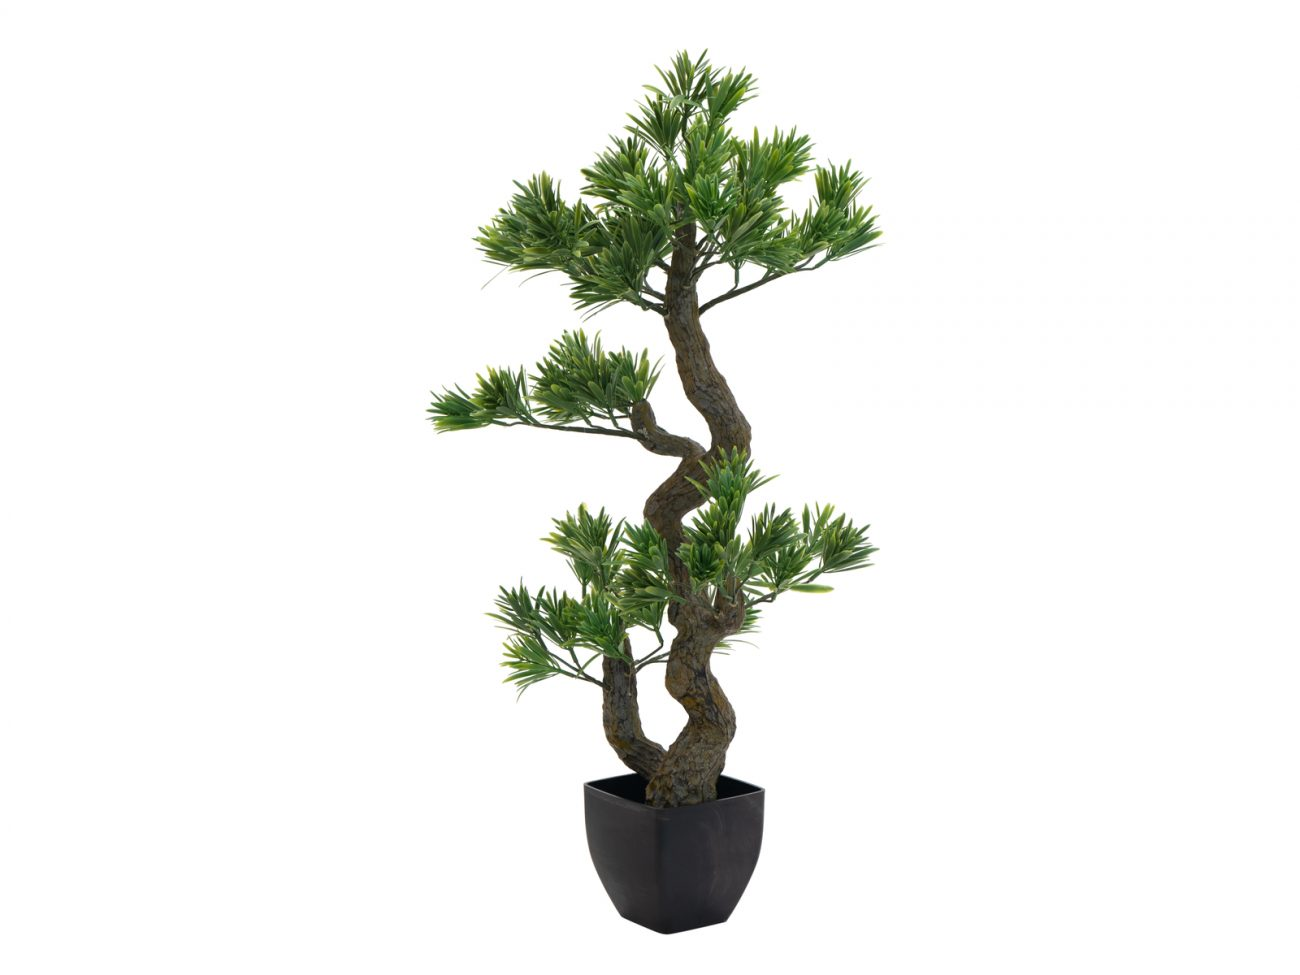 bonsai-artificiel-pin-artificiel